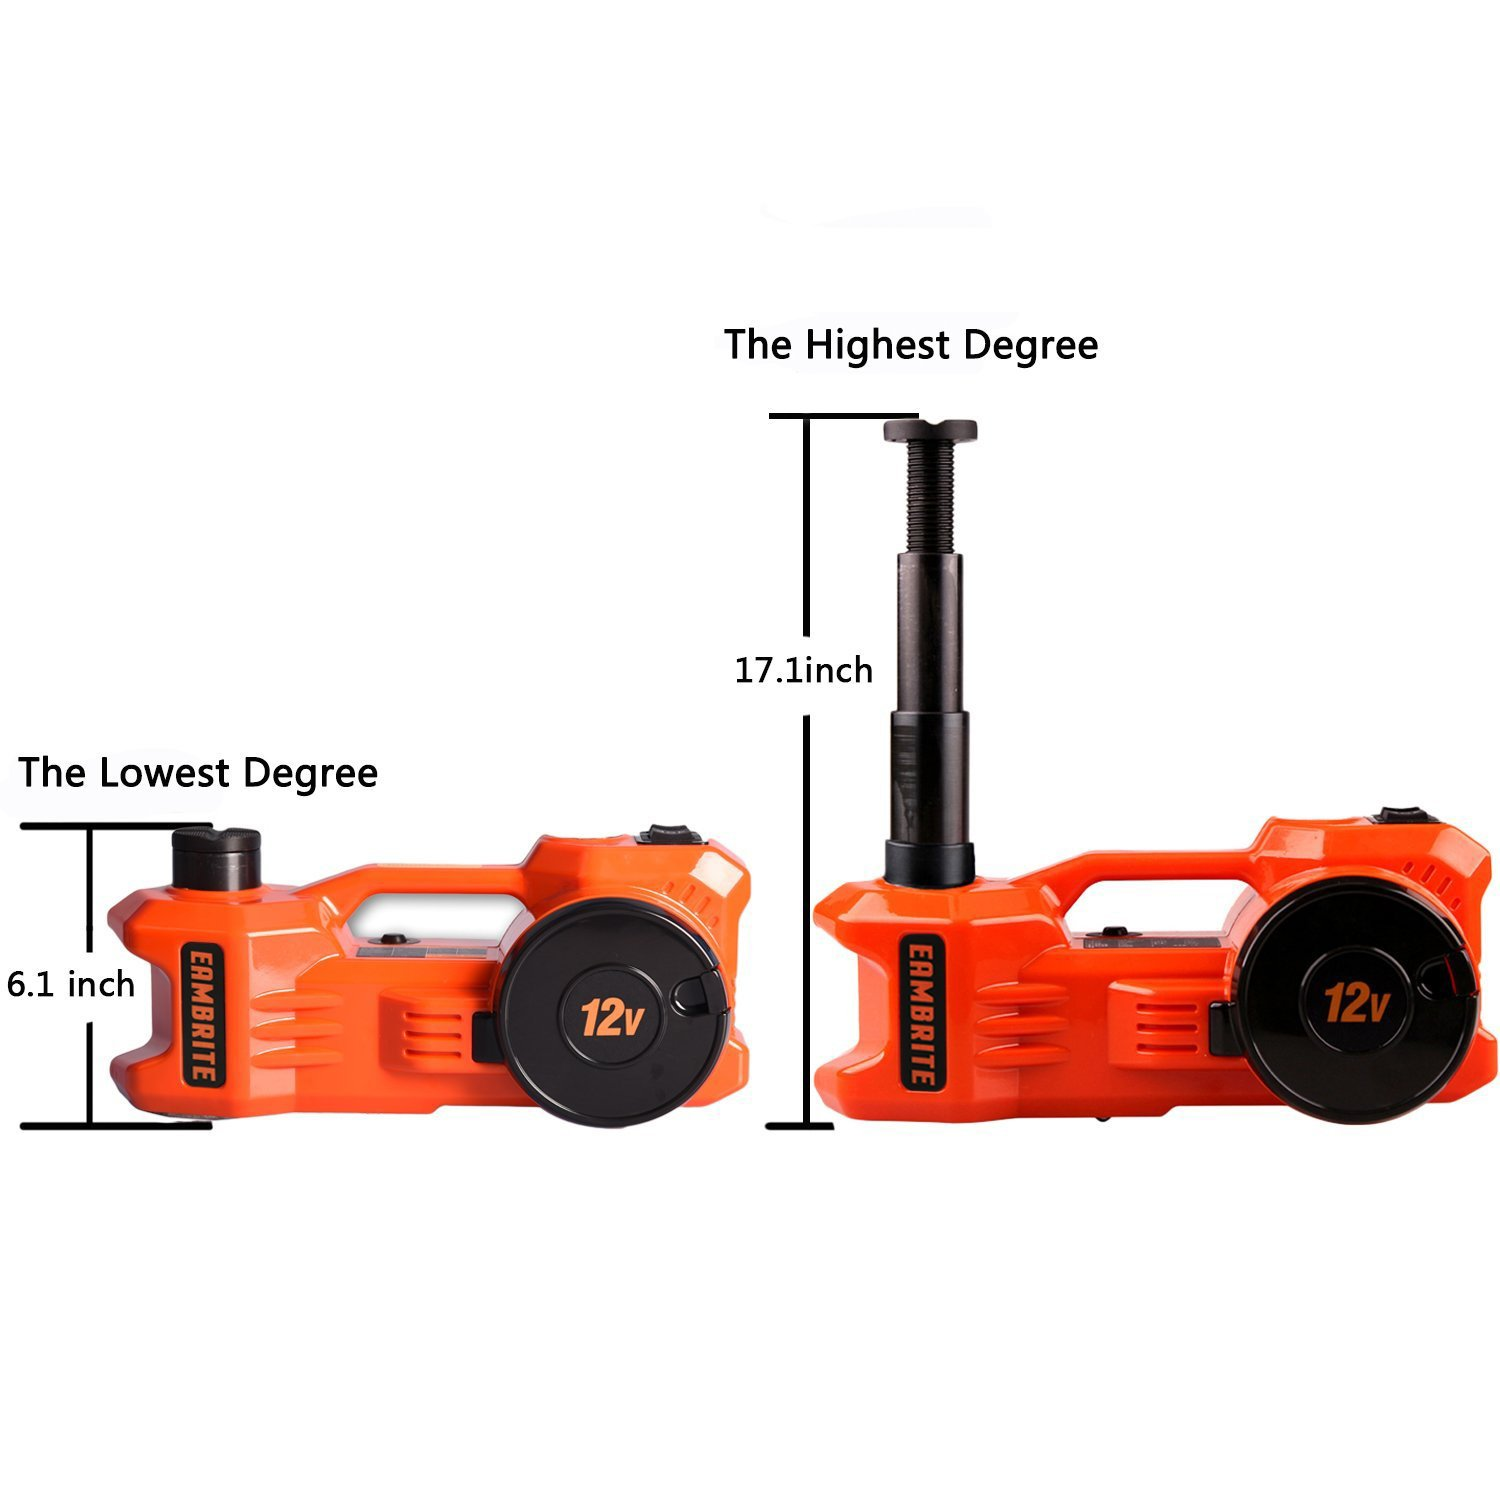 12V DC 1 Ton Electric Hydraulic Floor Jack Set with Impact Wrench For Car Use (6.1-17.1 inch, Orange) by EAMBRTE (Image #6)